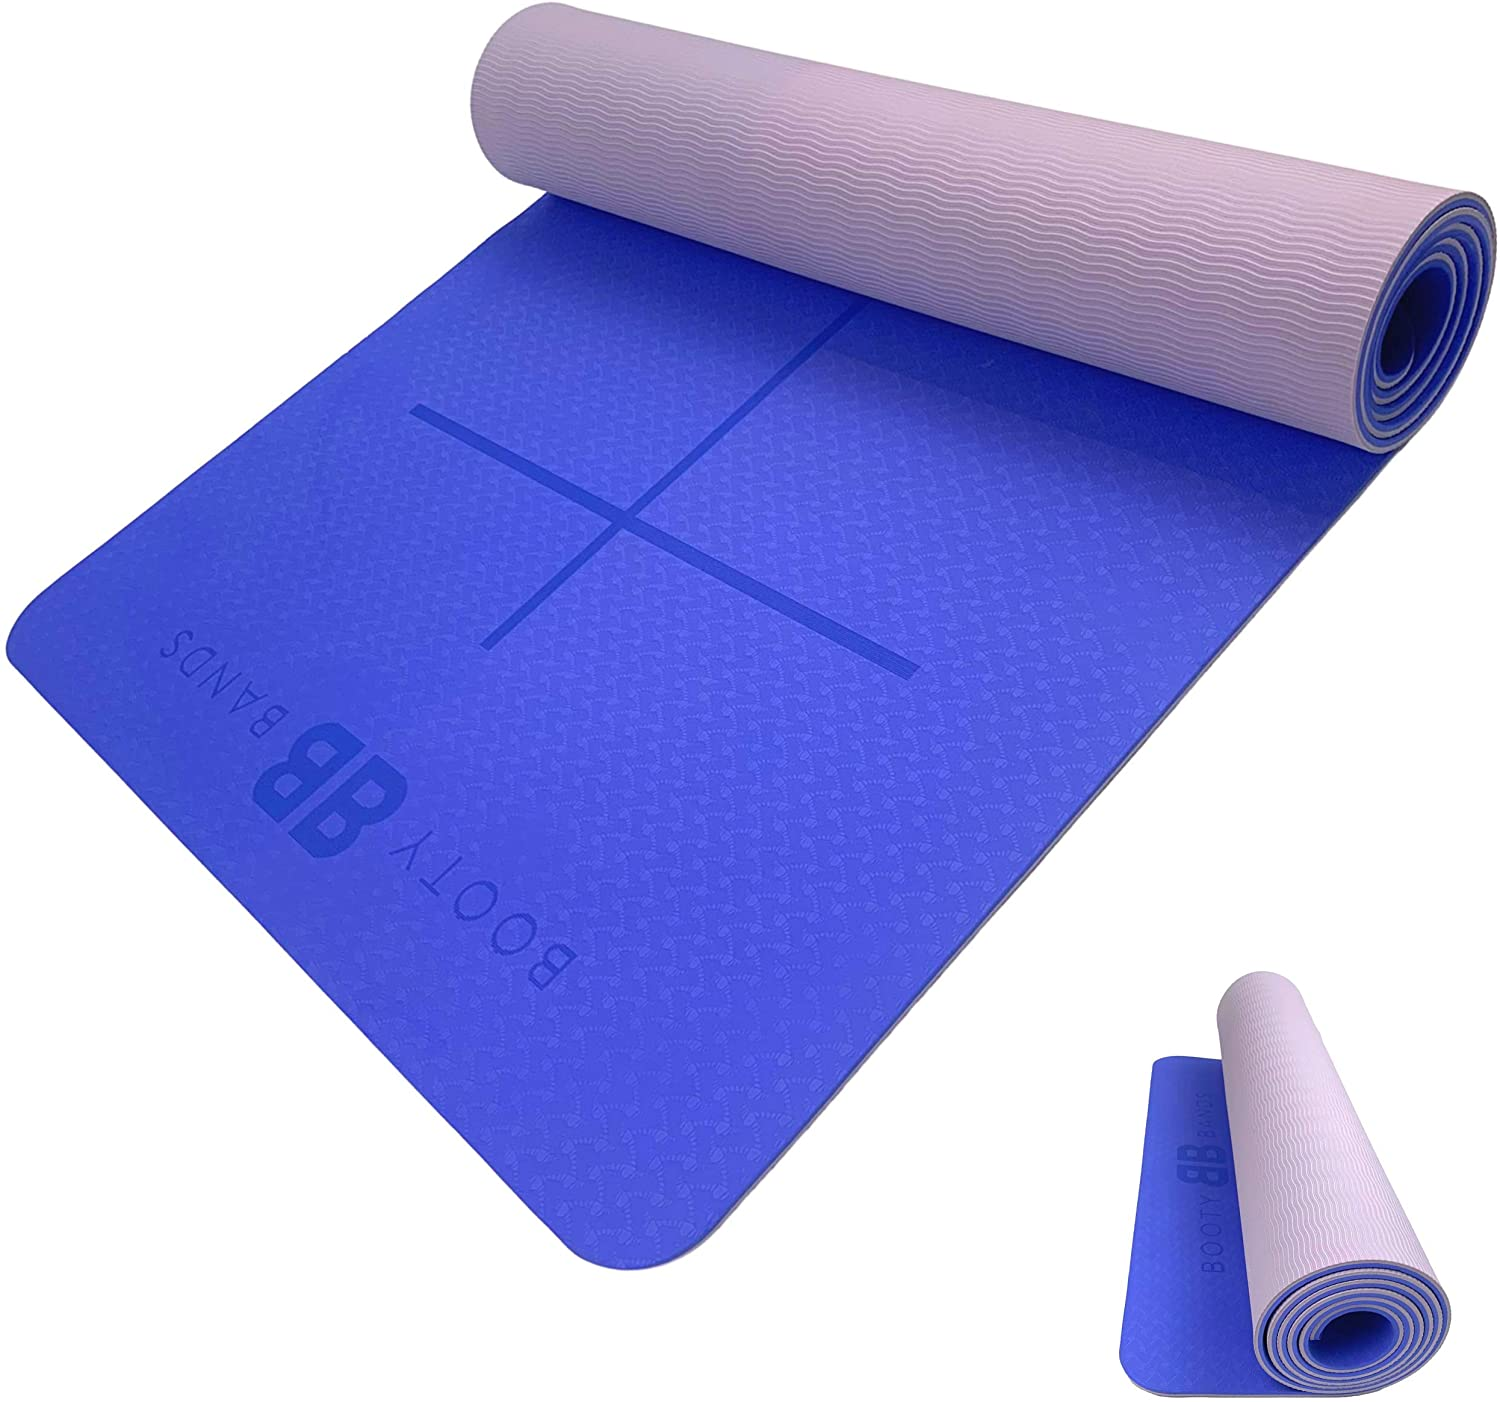 BOOTYBANDS ECO-Friendly Dual Skin Exercise Yoga MAT with Posture Lines